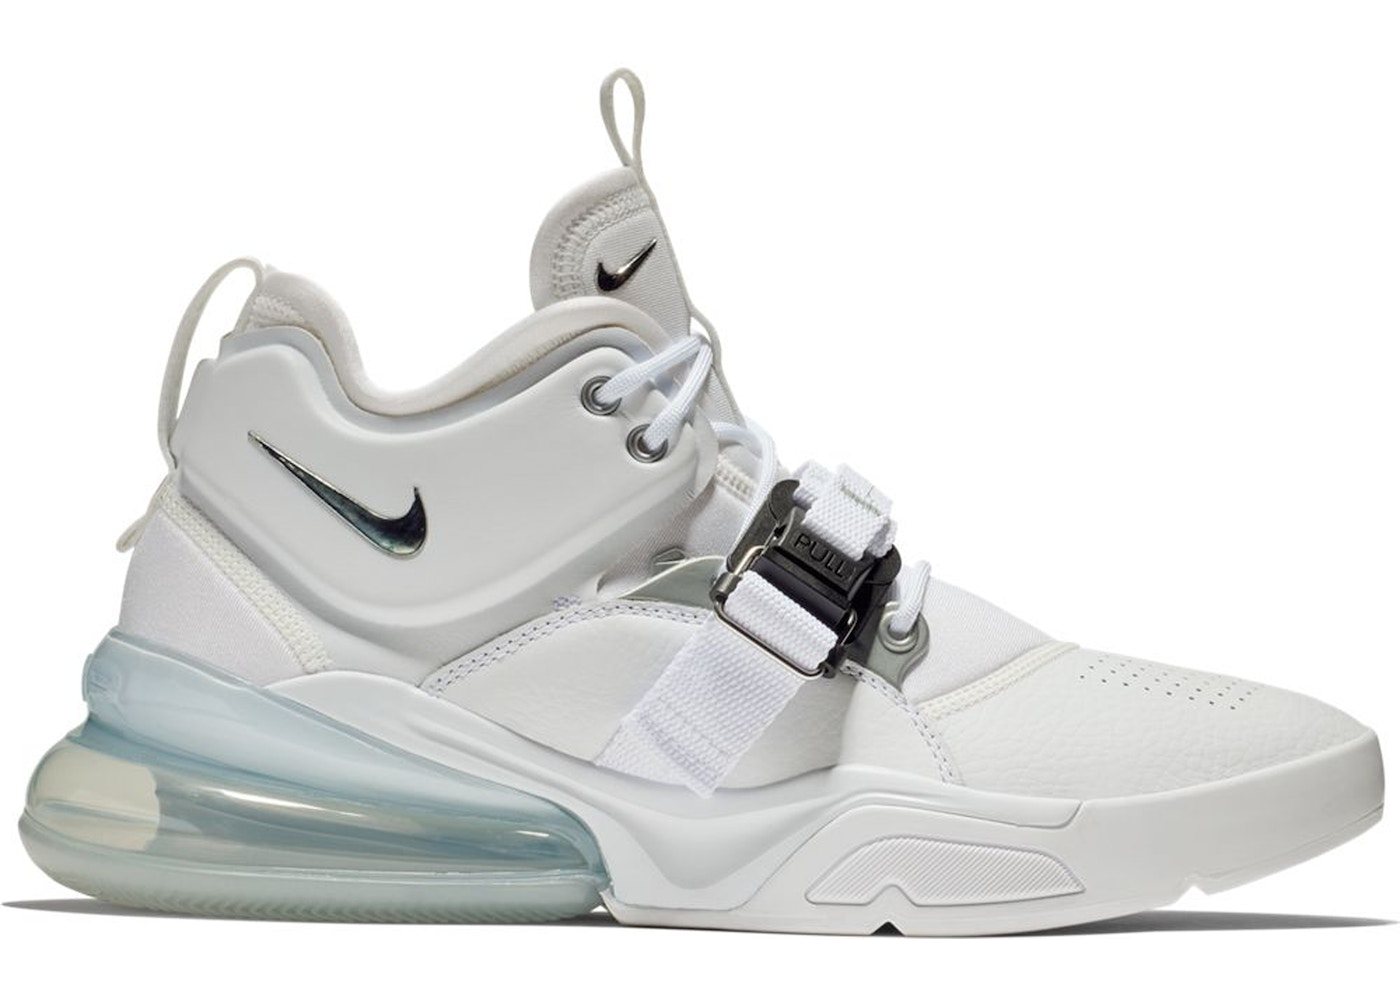 on sale 4f8f3 b7812 Air Force 270 White Metallic Silver